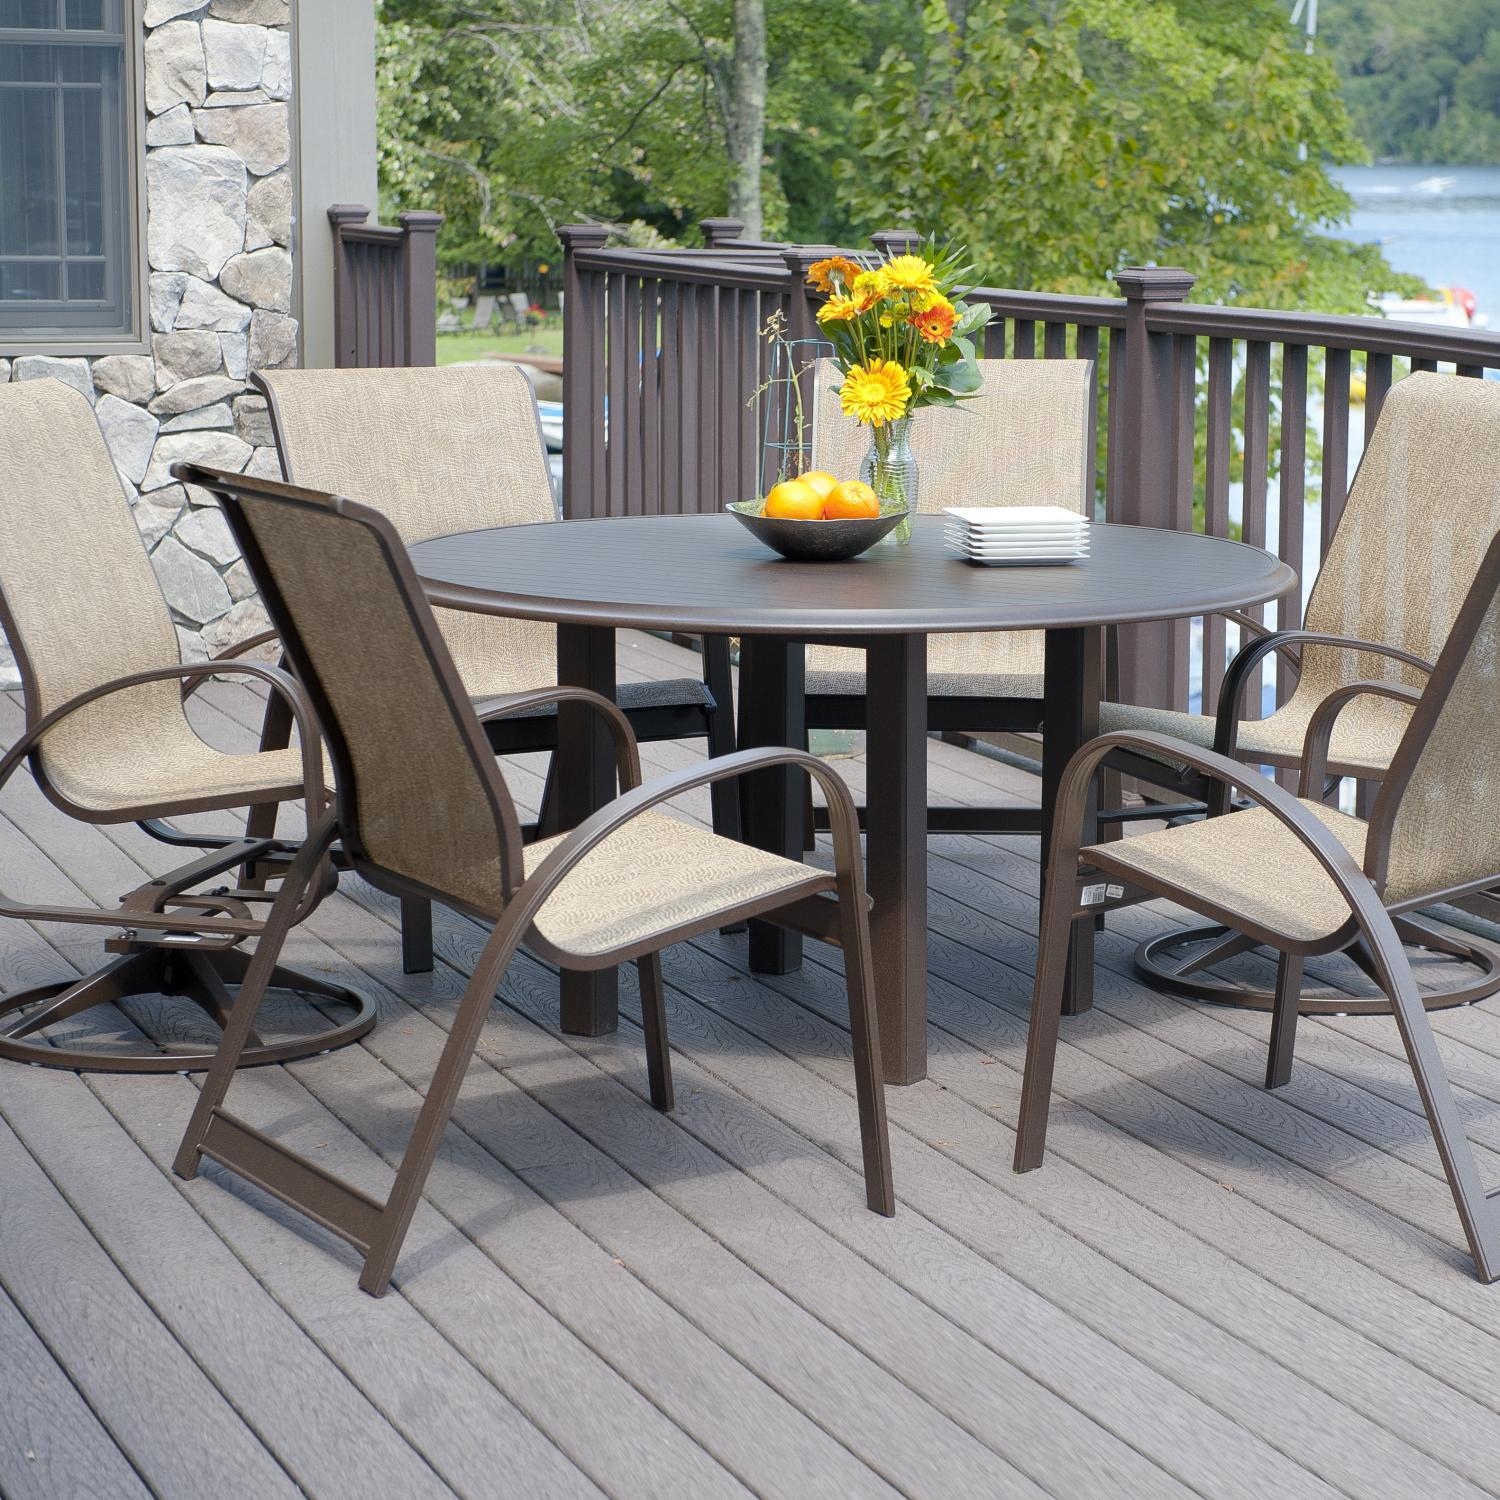 patio dining set with glass top table coffee discount id 90045 5 cf